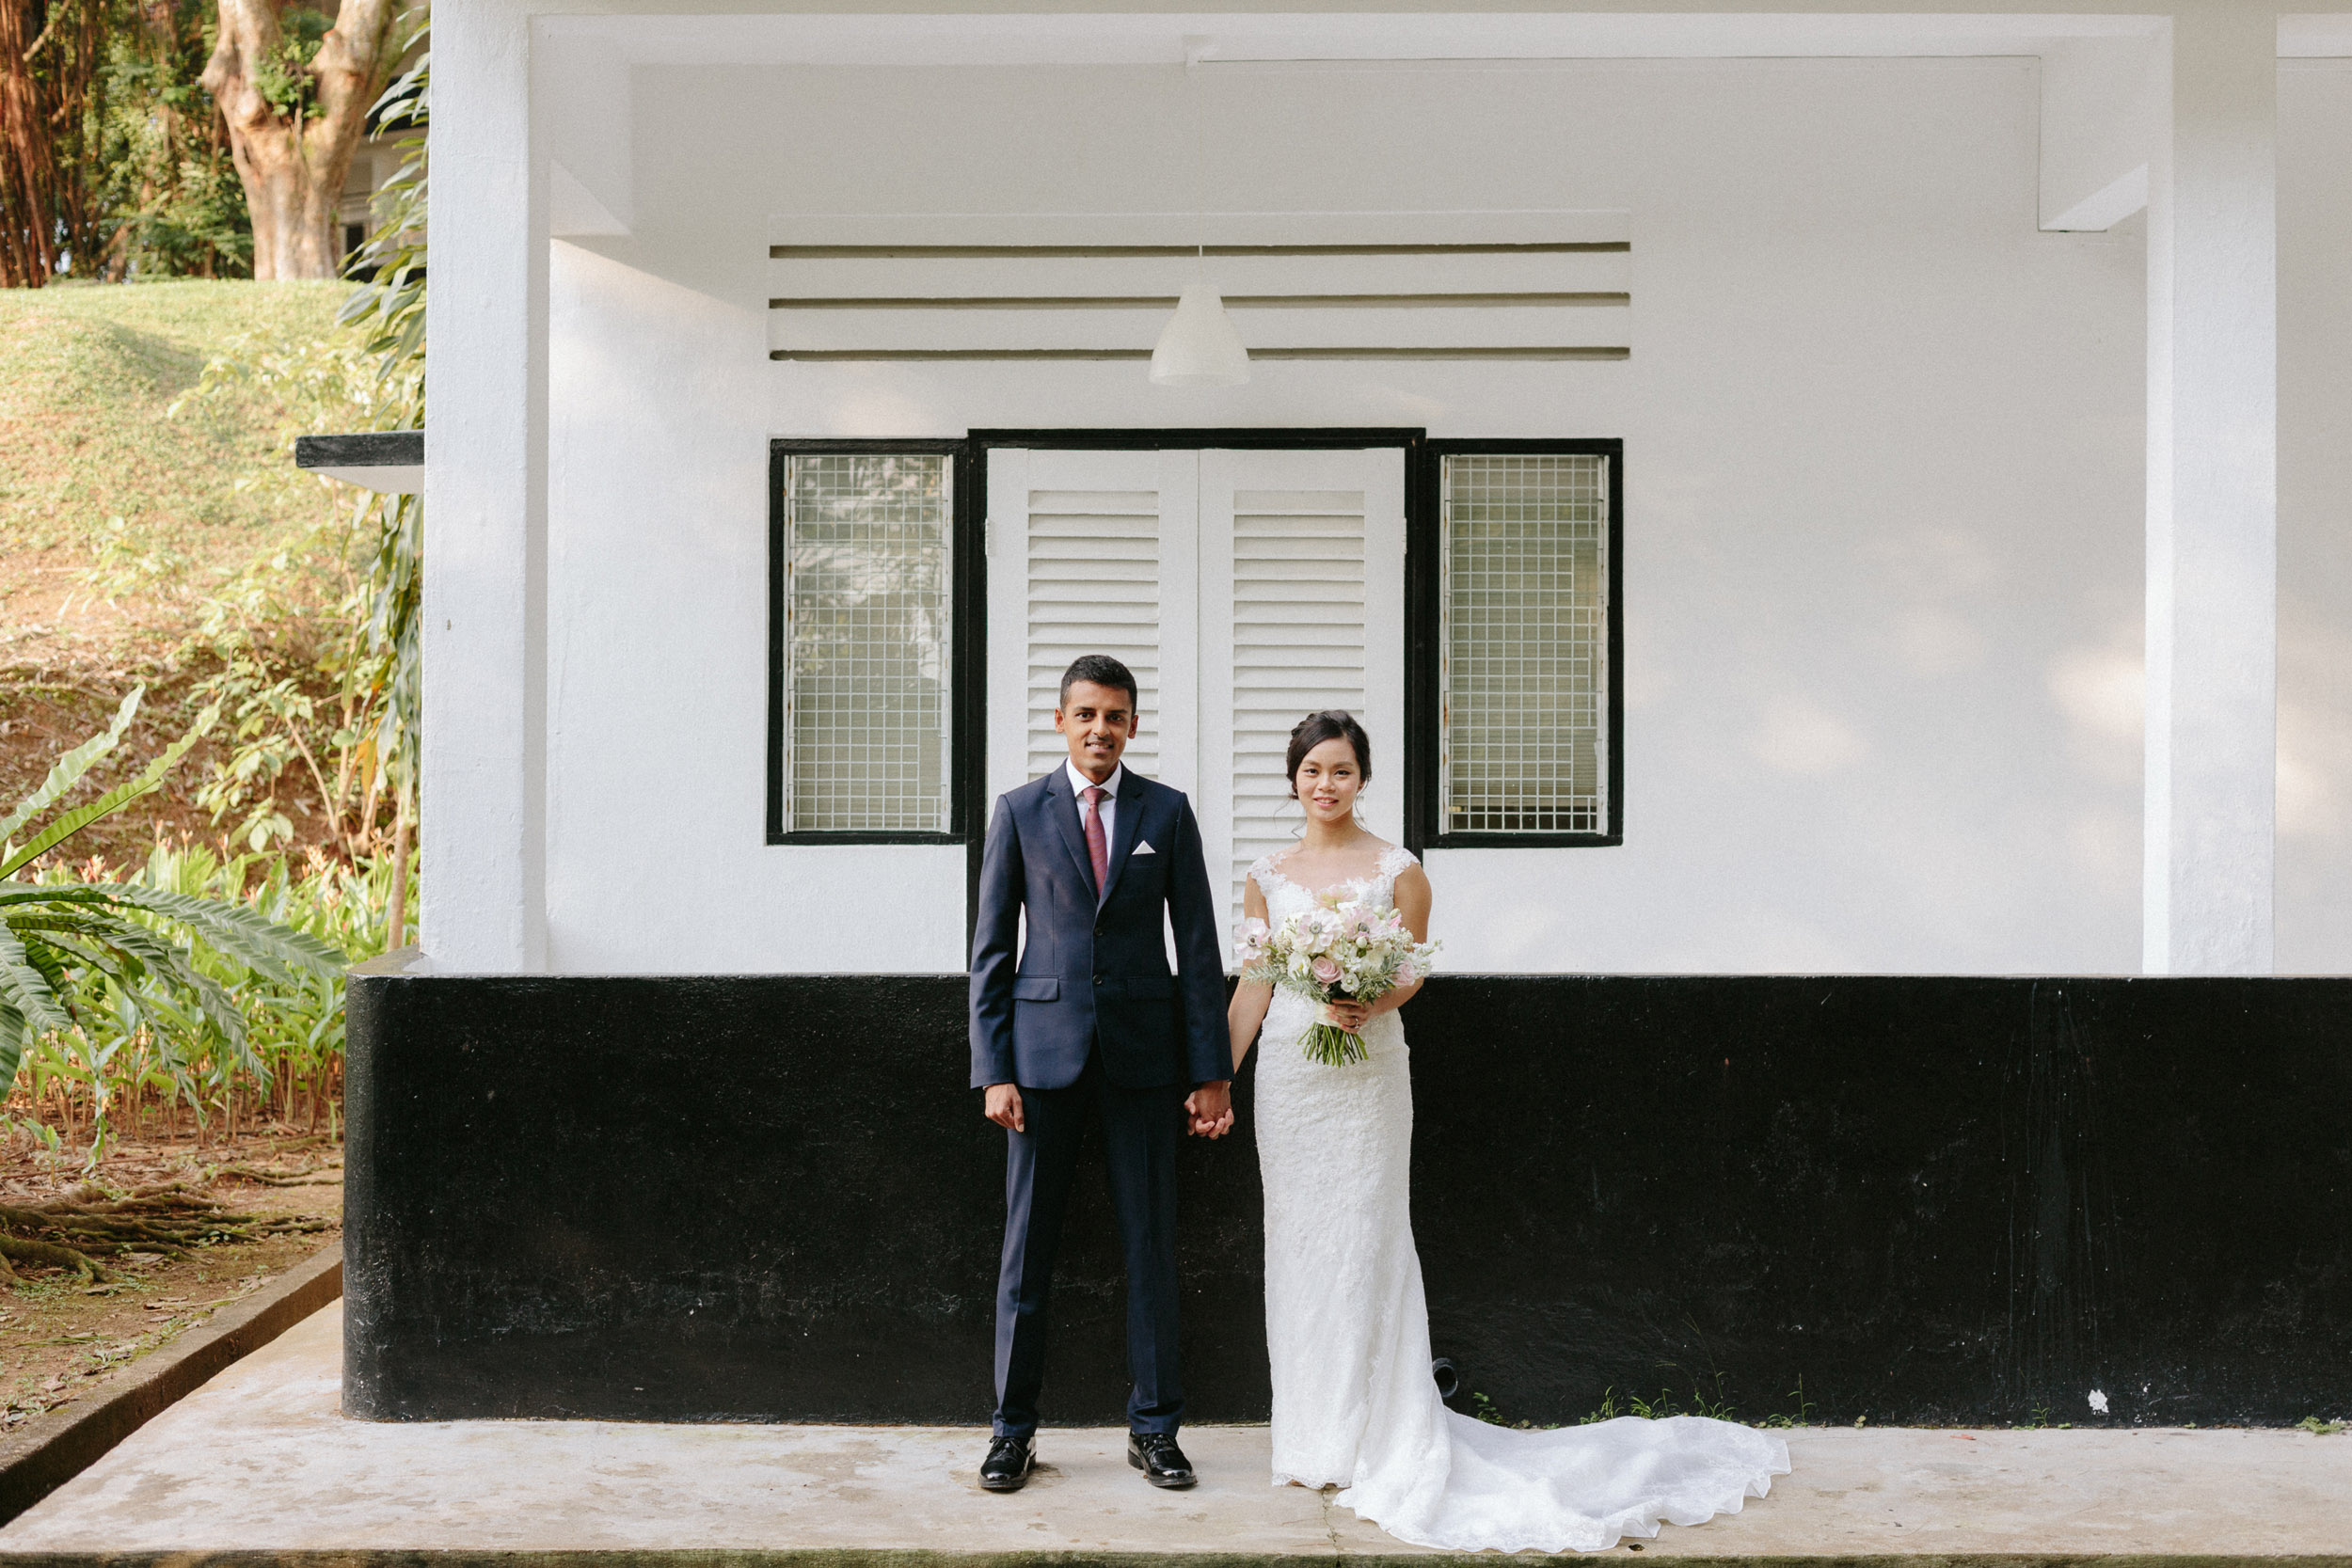 singapore-wedding-photographer-wemadethese-suriya-xinqi-01.jpg